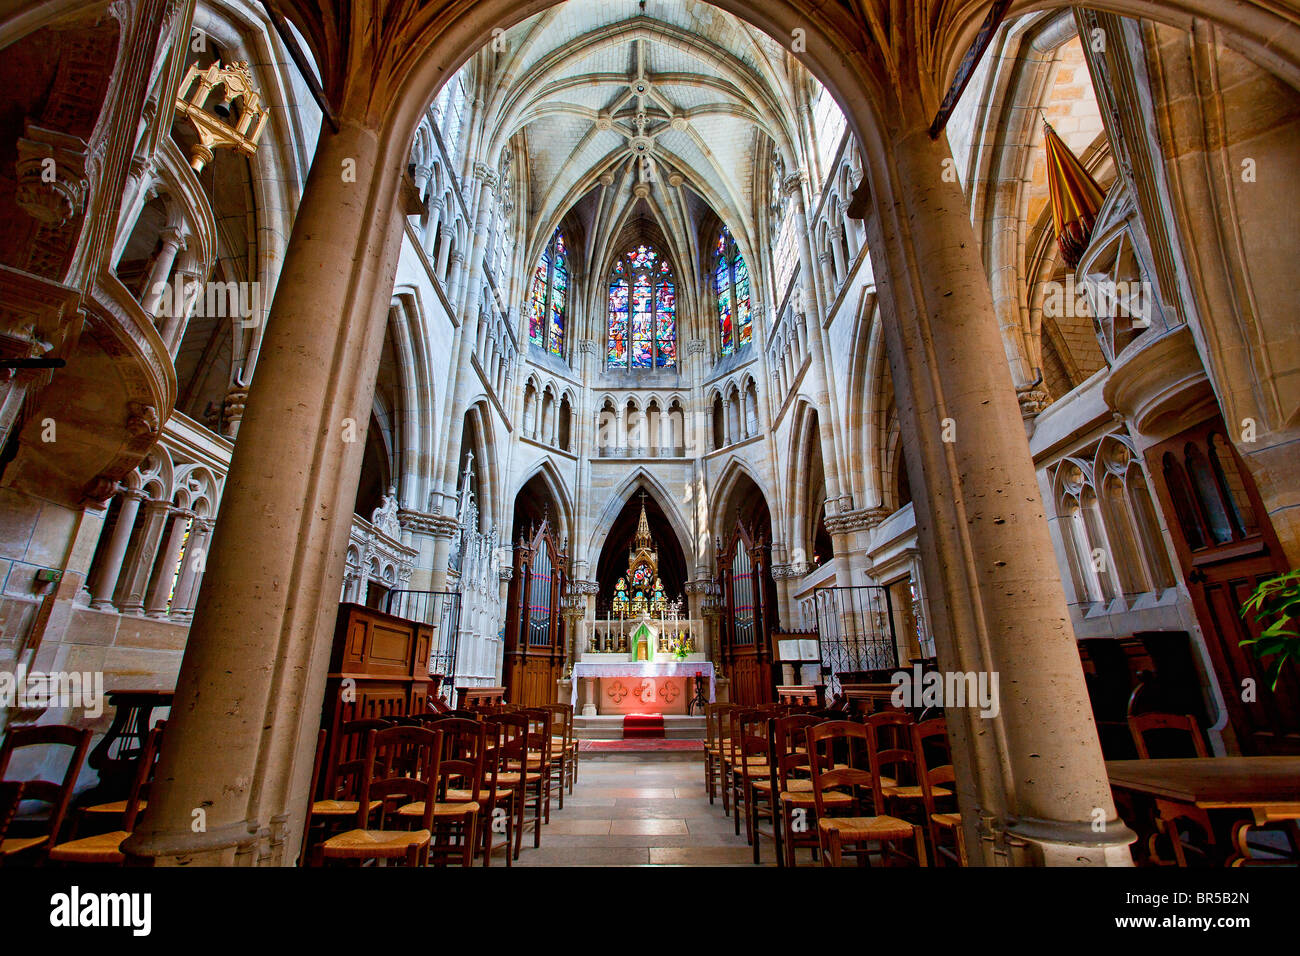 France, Marne, L'Epine, Notre Dame de l'Epine Basilica listed as World Heritage by UNESCO - Stock Image